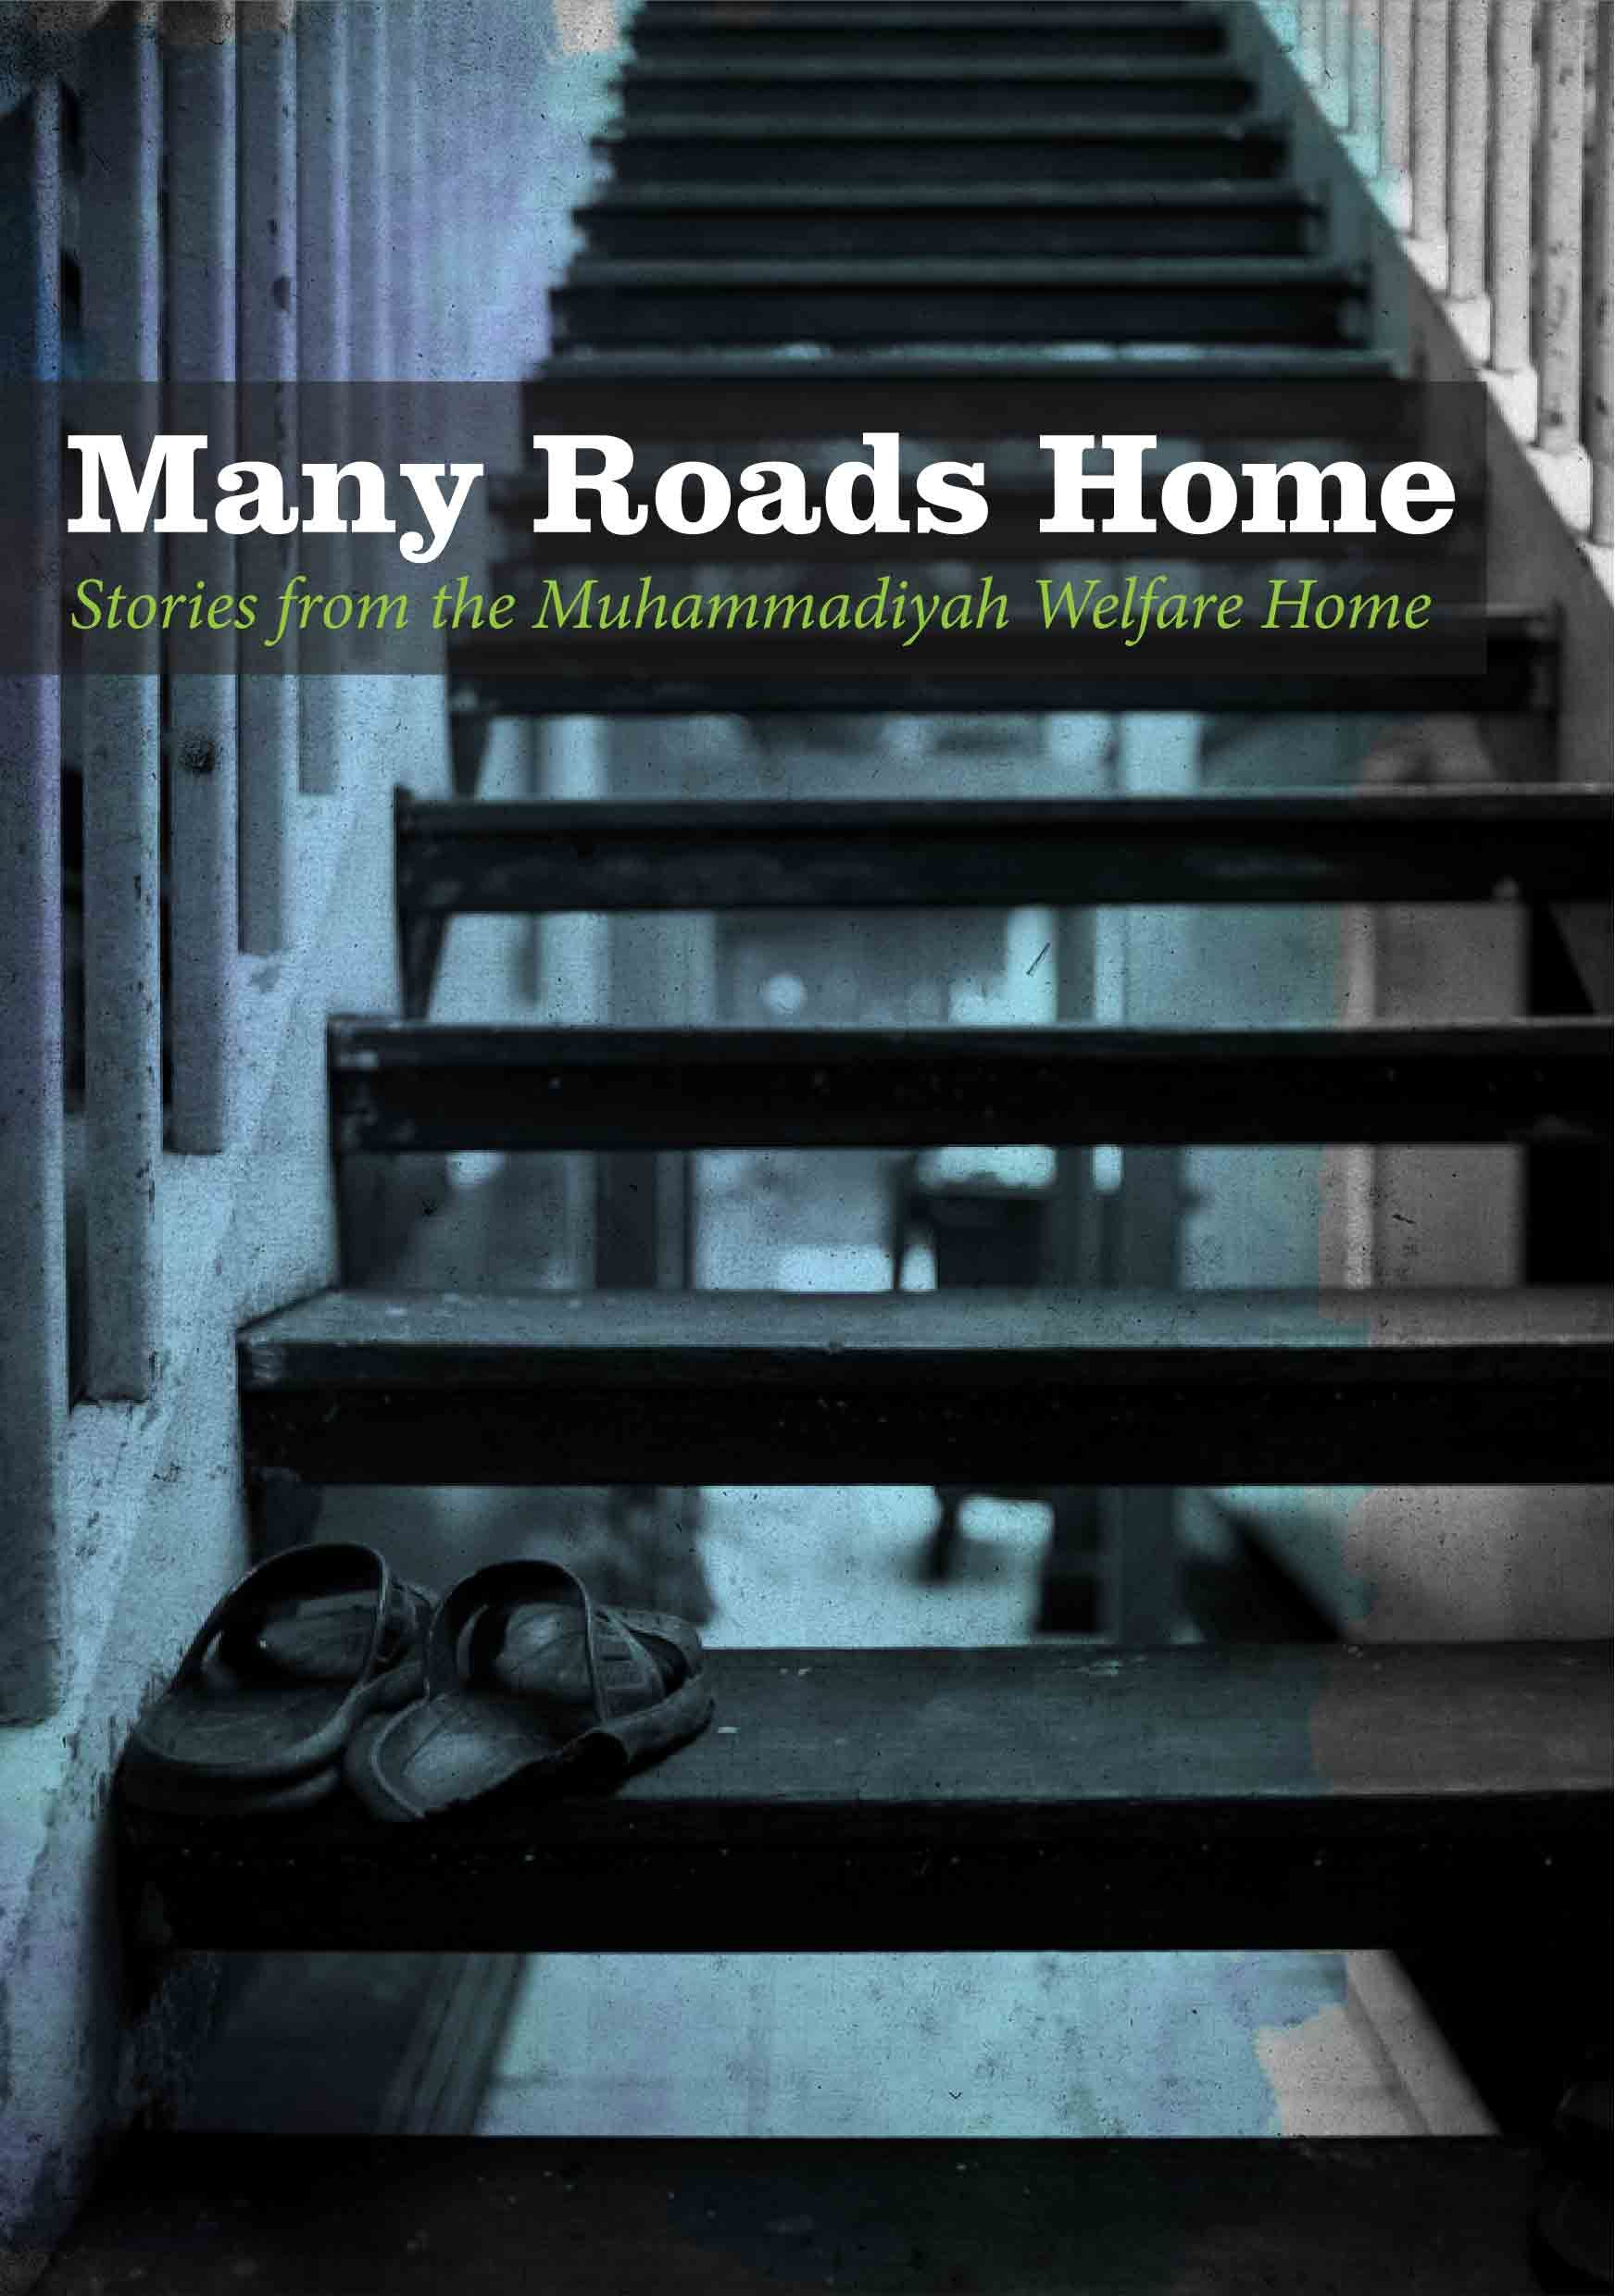 Many Roads Home - Stories From The Muhammadiyah Welfare Home by Ho, Stephanie; Jaime Koh Et Al (Eds.) Since 1989 the Muhammadiyah Welfare Home (MWF) has cared for Muslim children in need. This account of the Home's origins and work shows how the government, Courts, Muslim community and volunteers of many of backgrounds have come together in providing care.